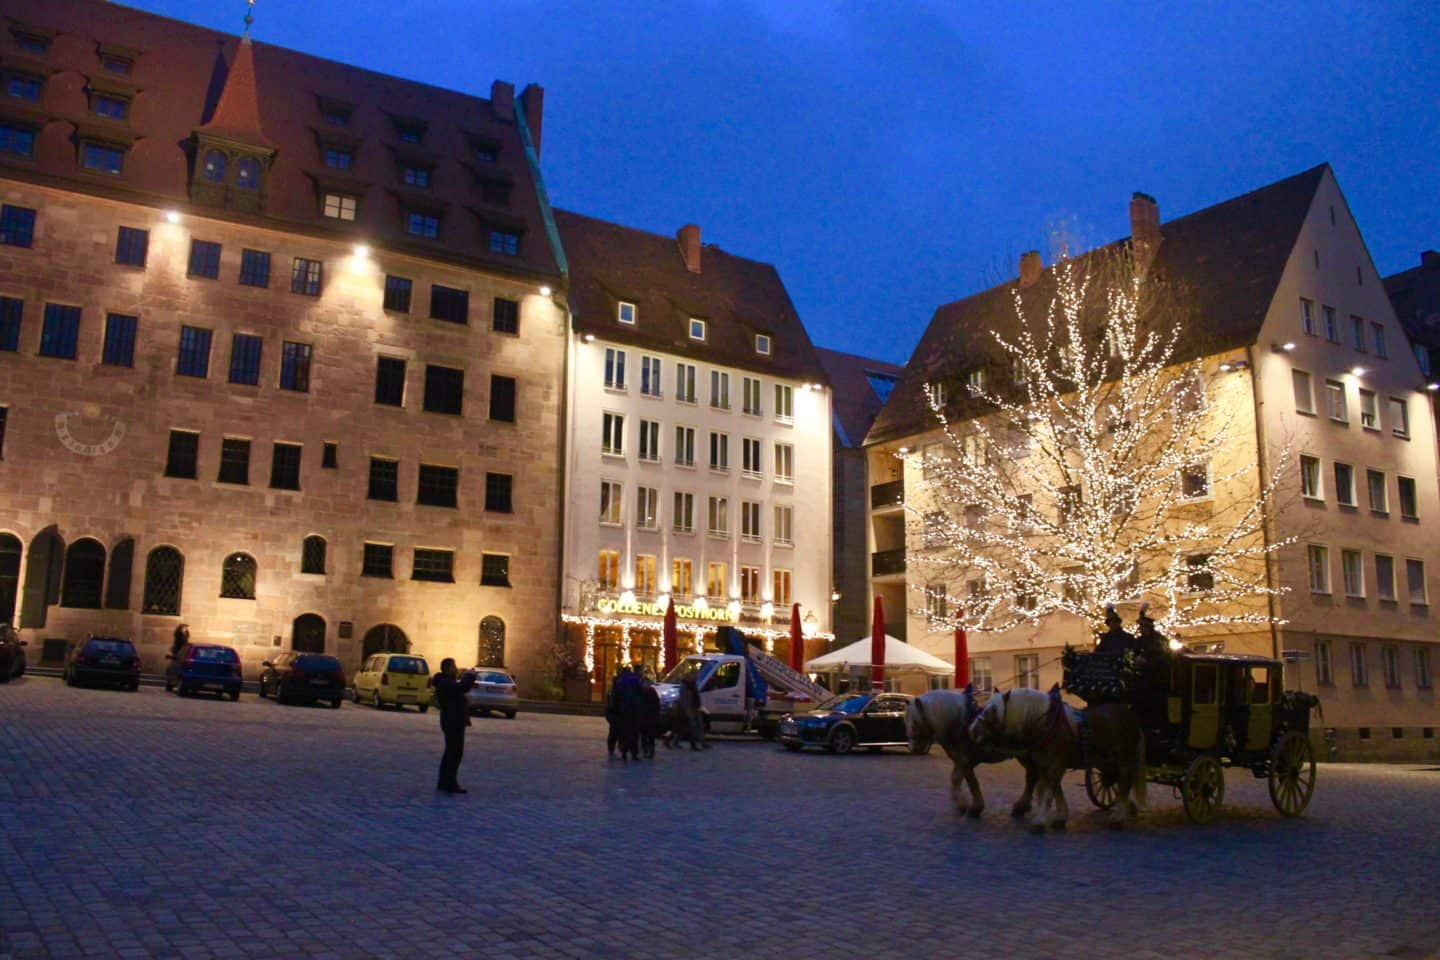 Nuremberg's medieval town centre at night